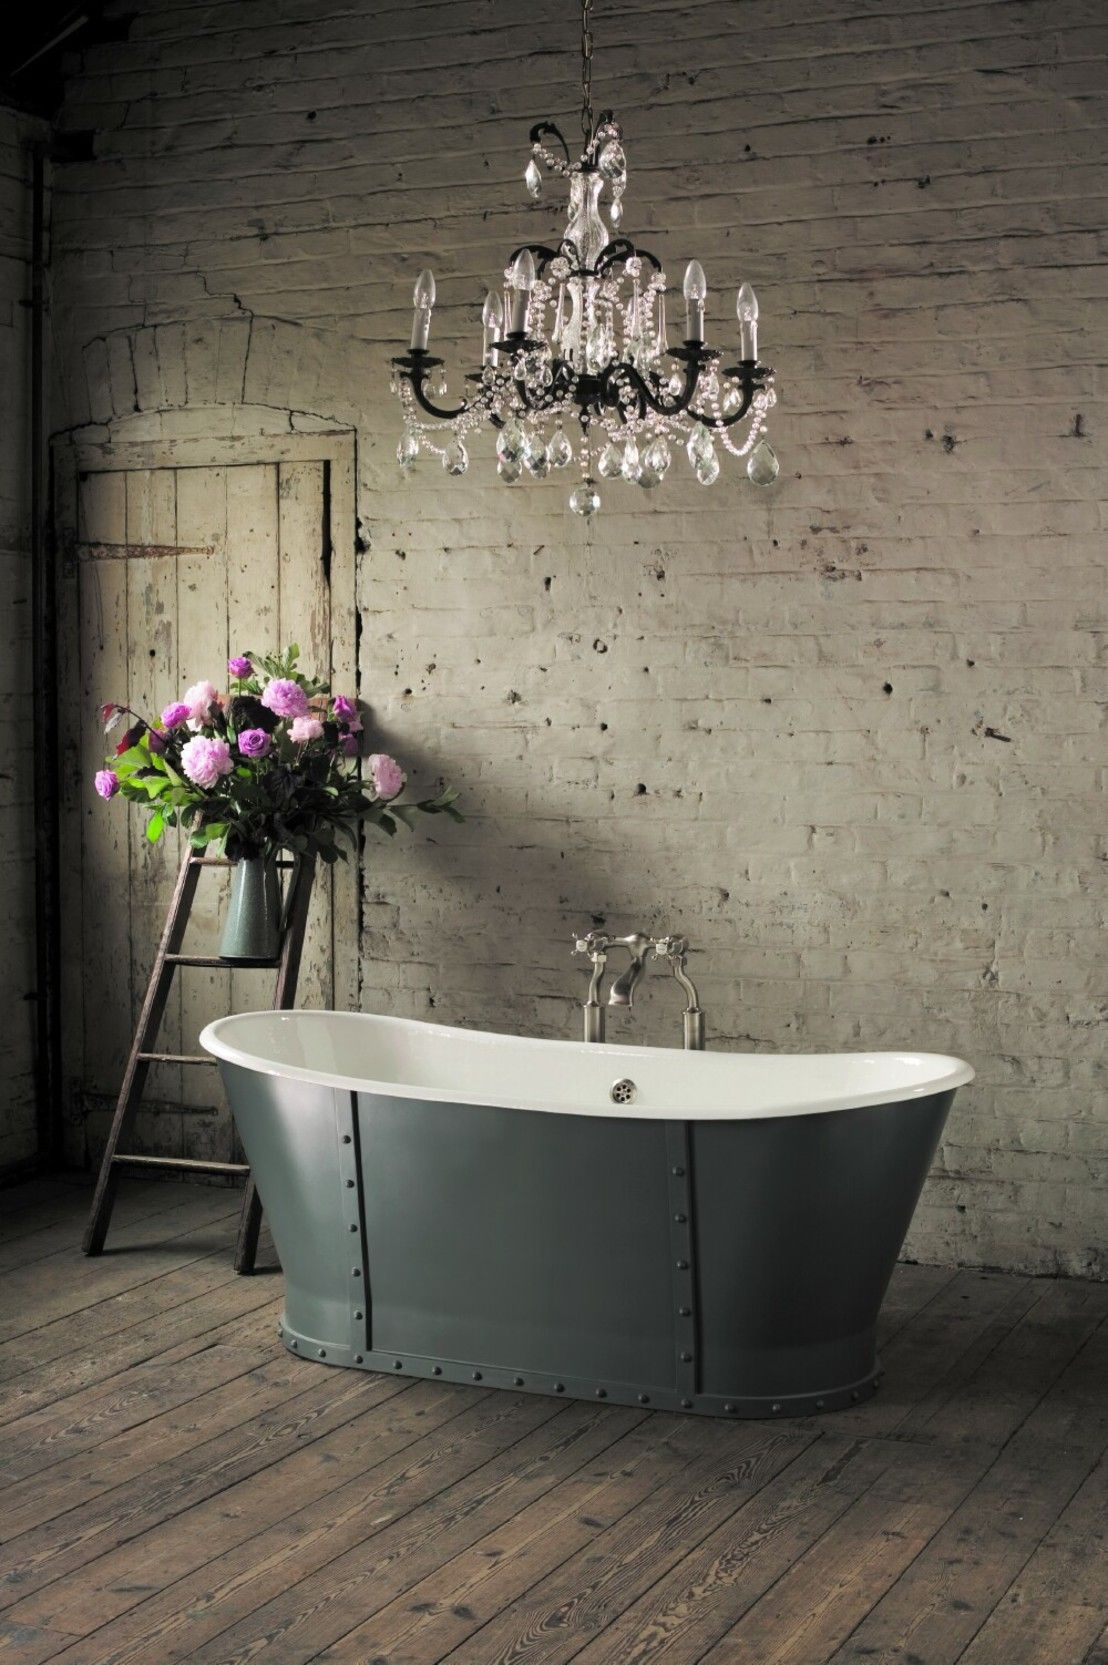 French style bathroom ideas - Splendid Rustic French Style Bathroom Interior With Luxury Chandelier Rough Walls And Wooden Floors